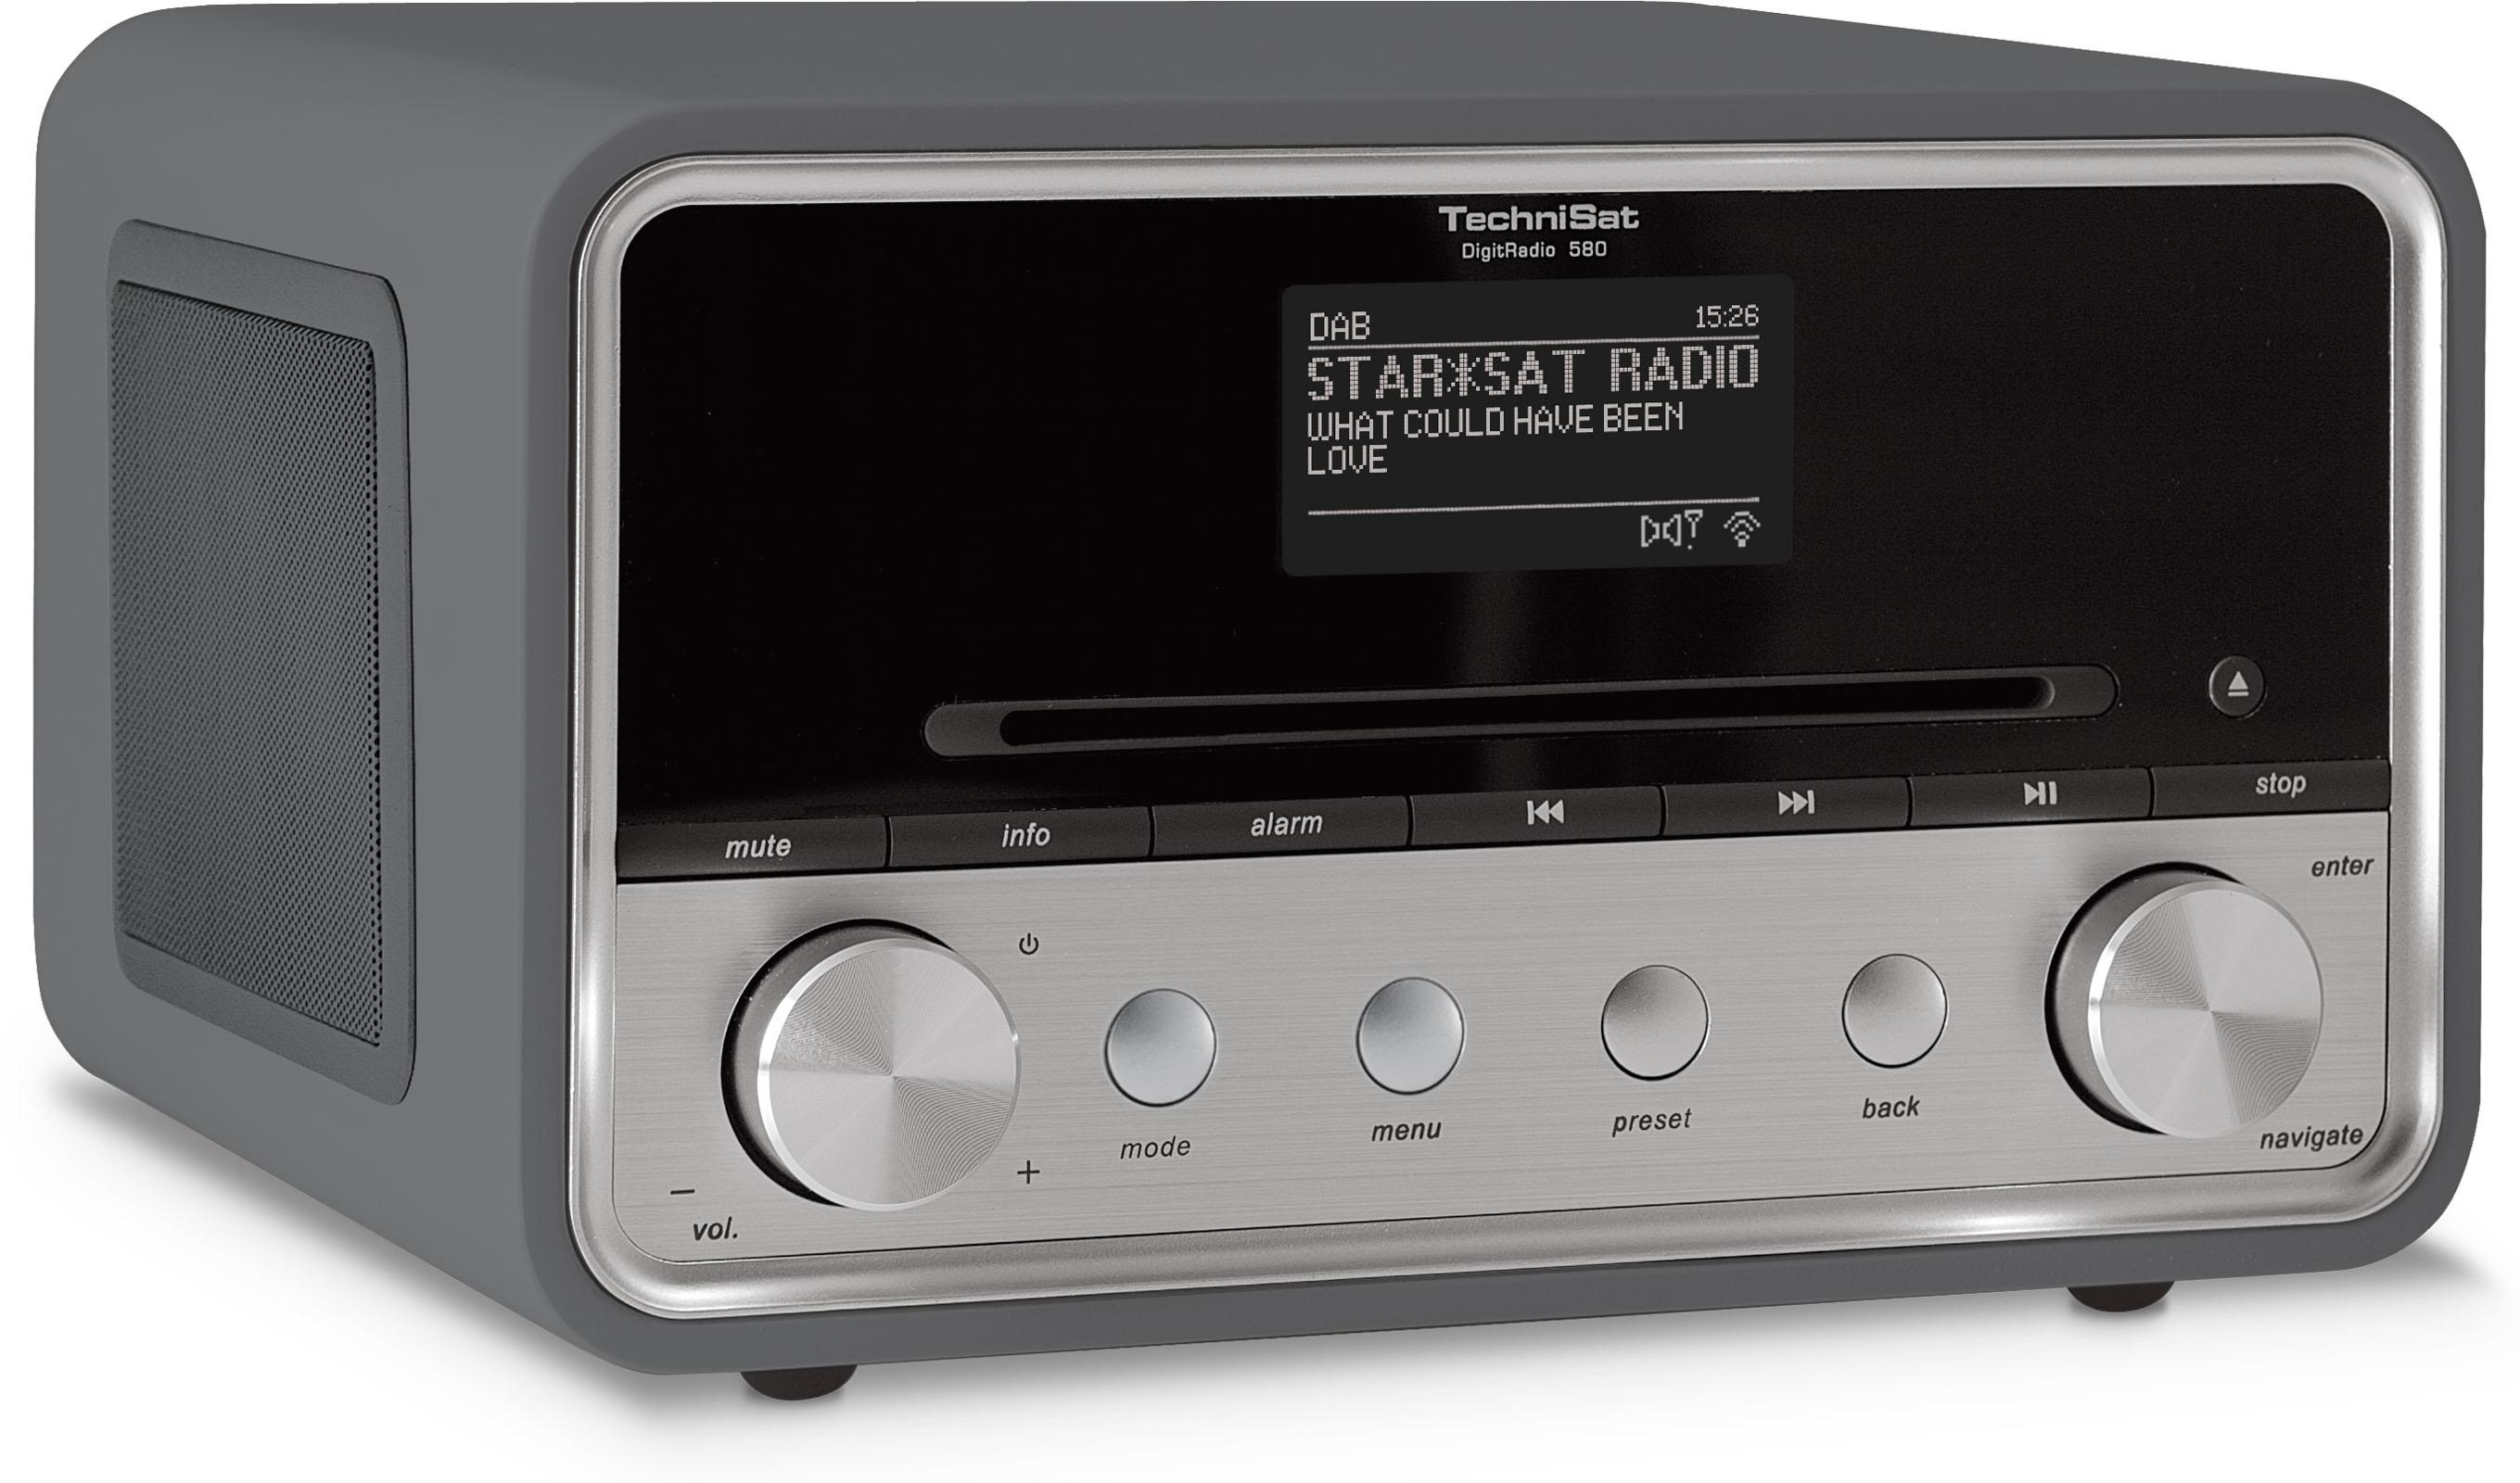 technisat digitradio 580 stereo digitalradio mit cd player dab ukw internetradio. Black Bedroom Furniture Sets. Home Design Ideas